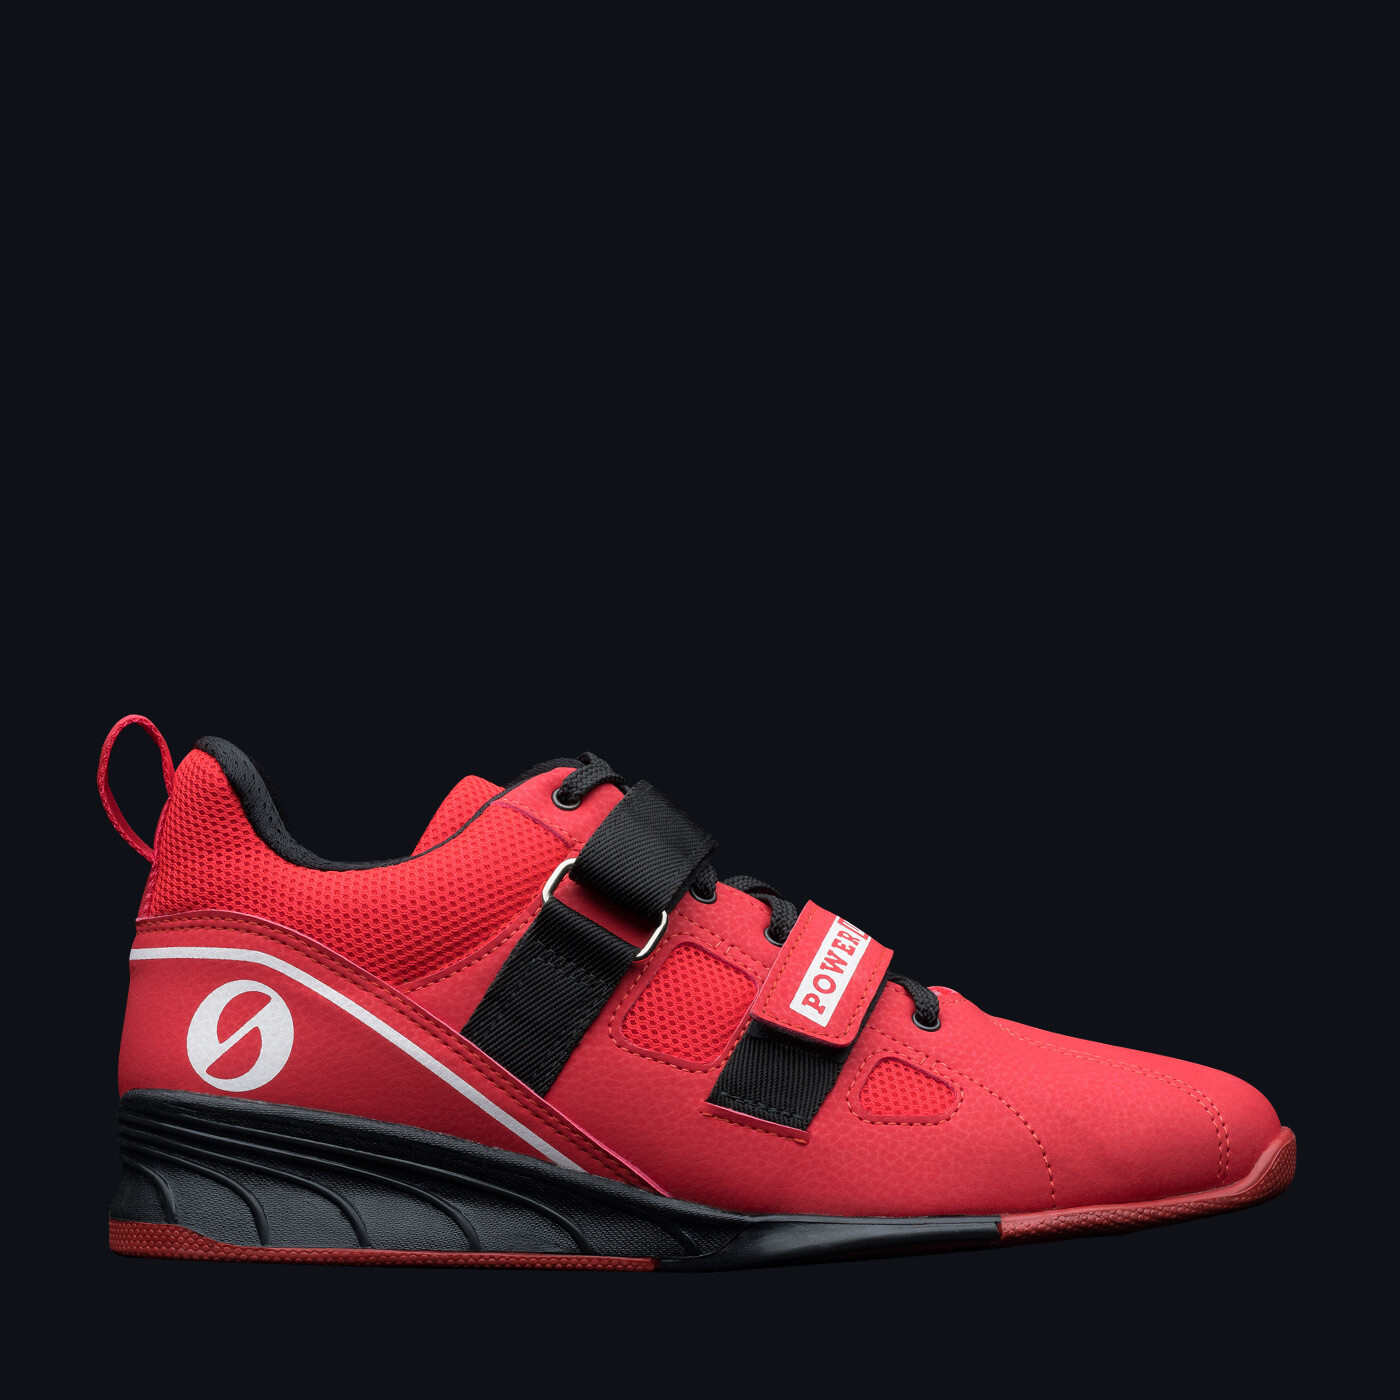 SABO POWERLIFT RED weightlifting powerlifting crossfit gym shoes